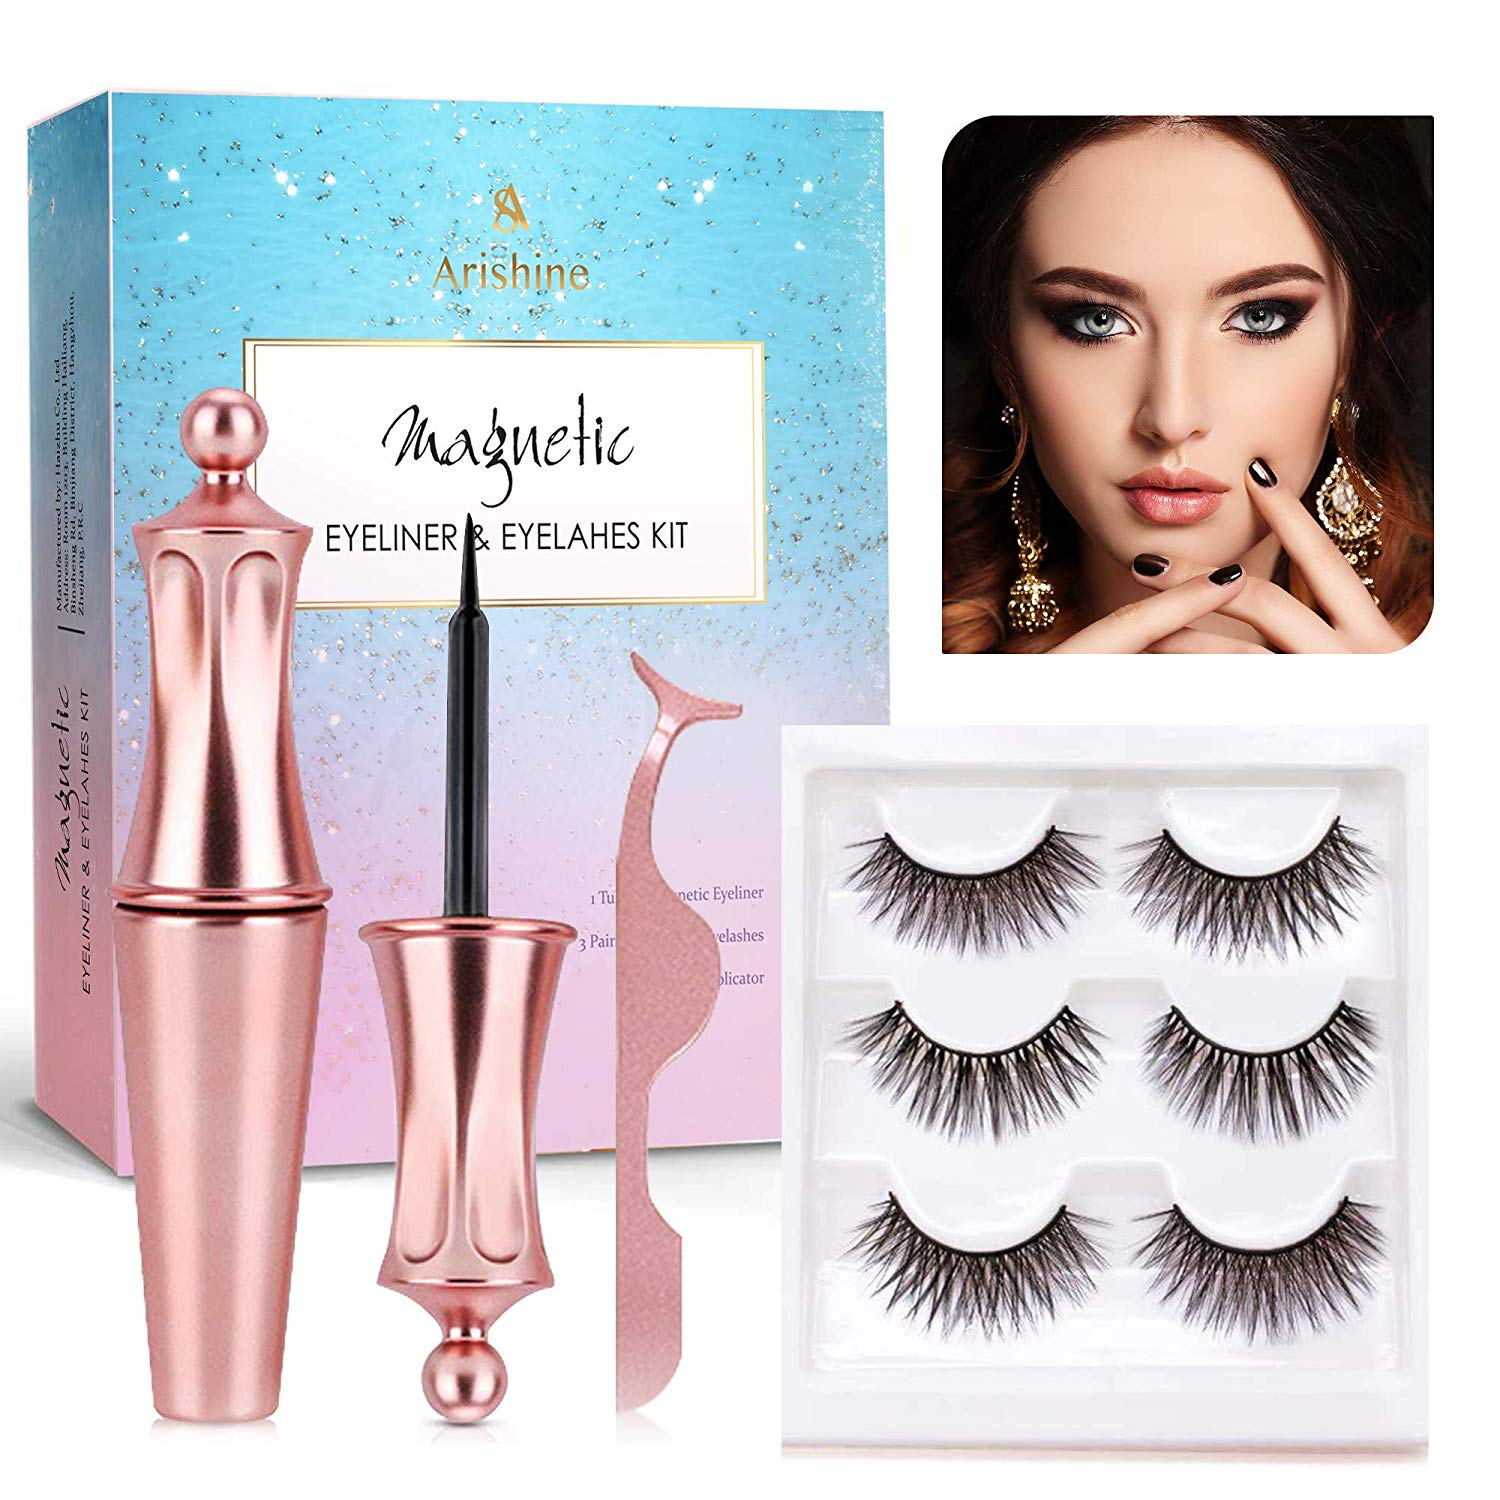 Arishine 3 Different Pairs of Magnetic Eyelashes and Magnetic Eyeliner Kit with Applicator